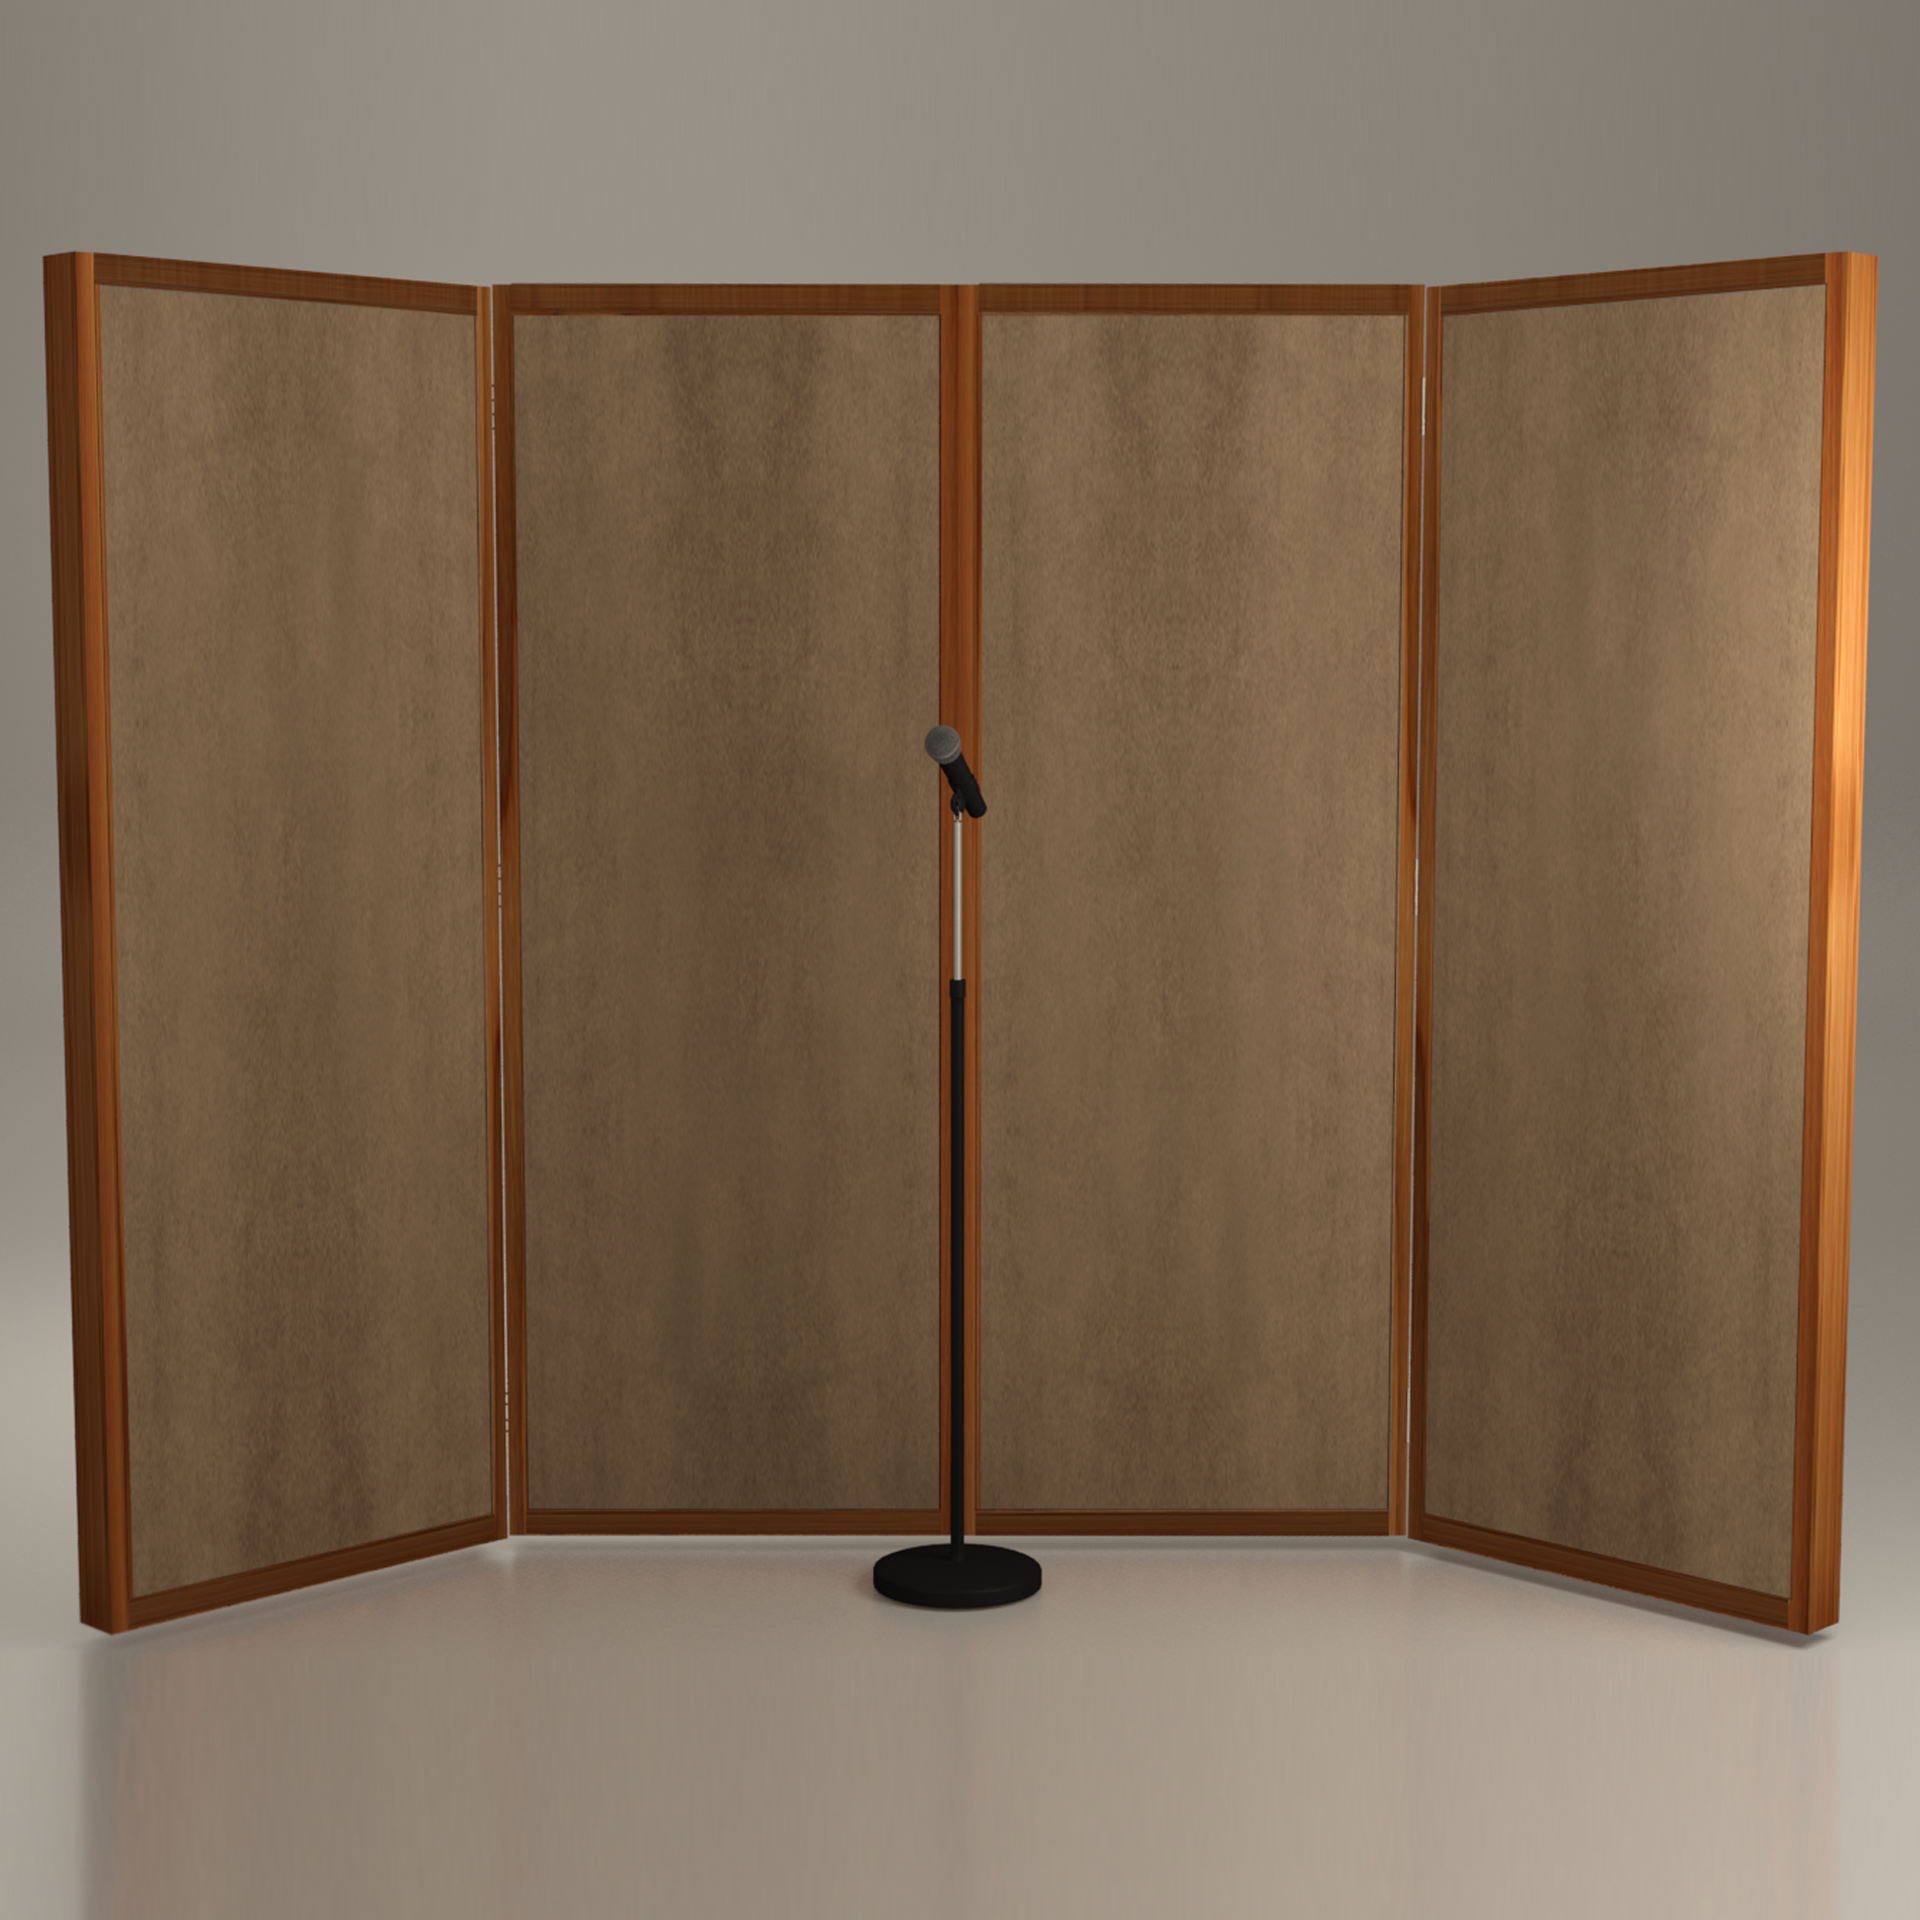 Diy Soundproof Room Divider Booth Vocal Booth System 6 39x8 39x2 Quot In 2019 Home Studio